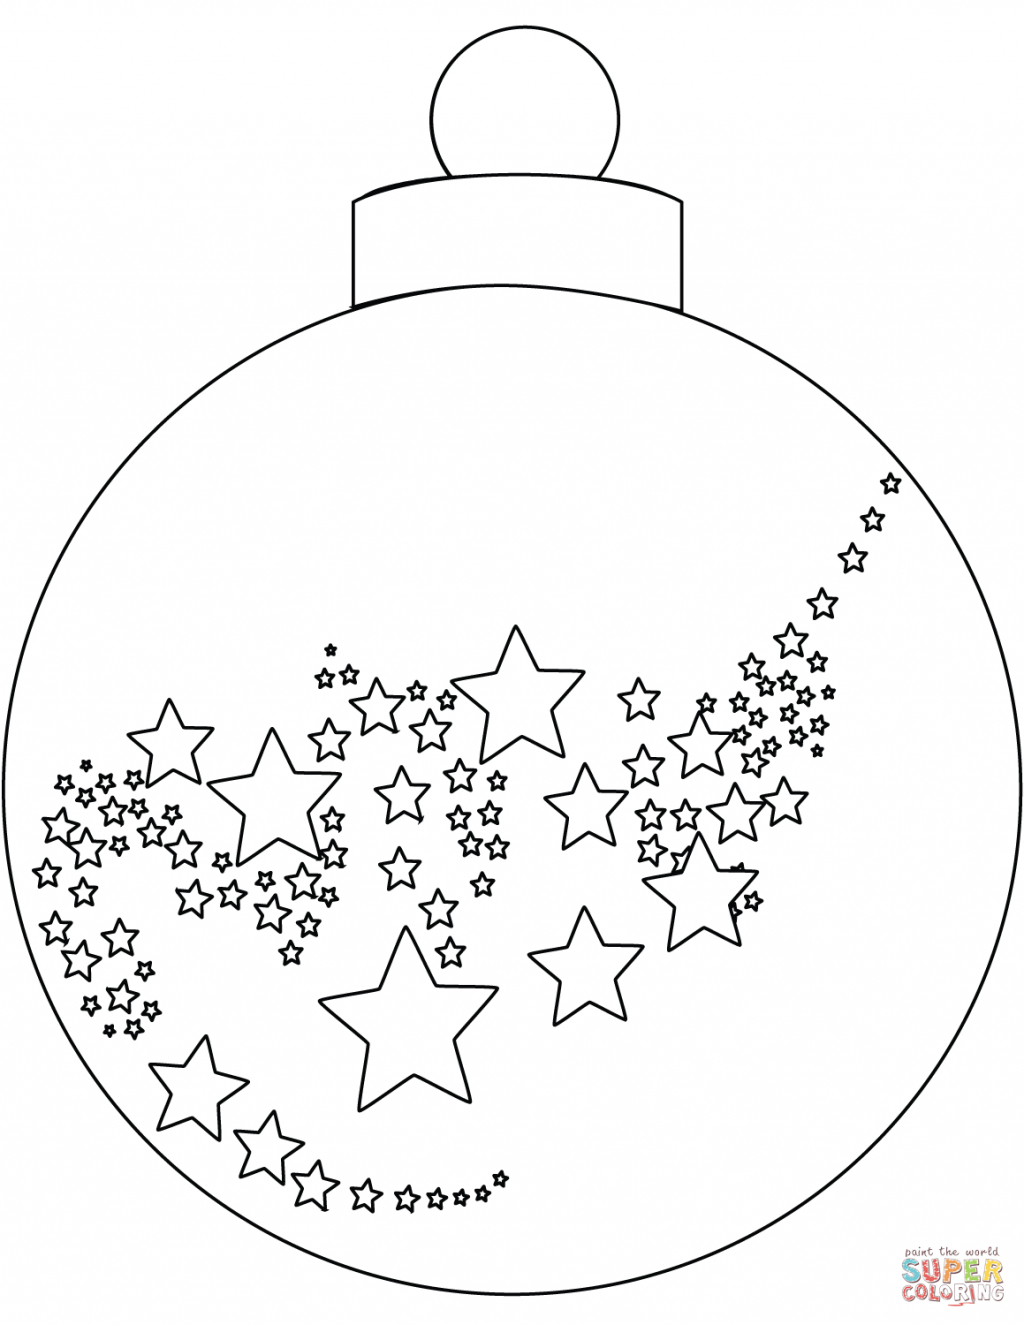 Coloring Pages ~ Ornaments Free Printable Christmas Coloring Pages - Free Printable Christmas Ornaments